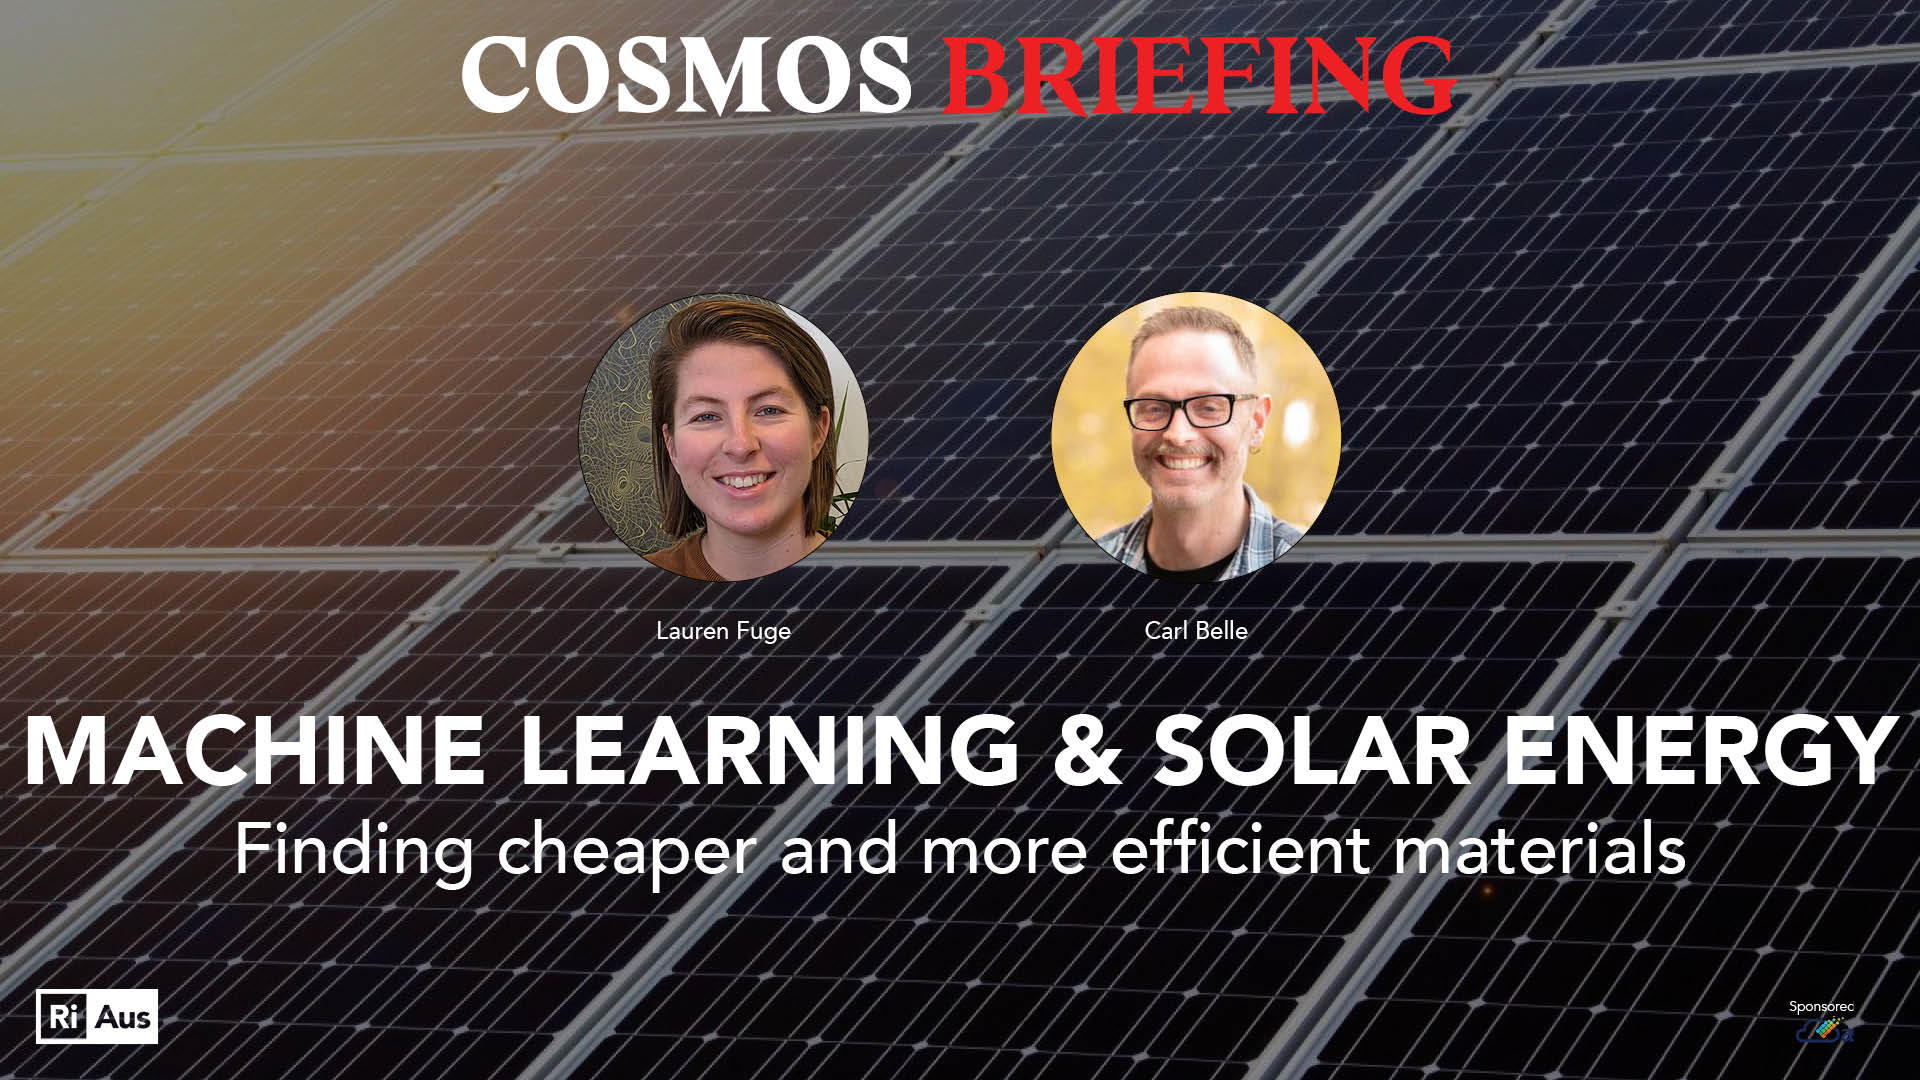 Machine learning and solar energy